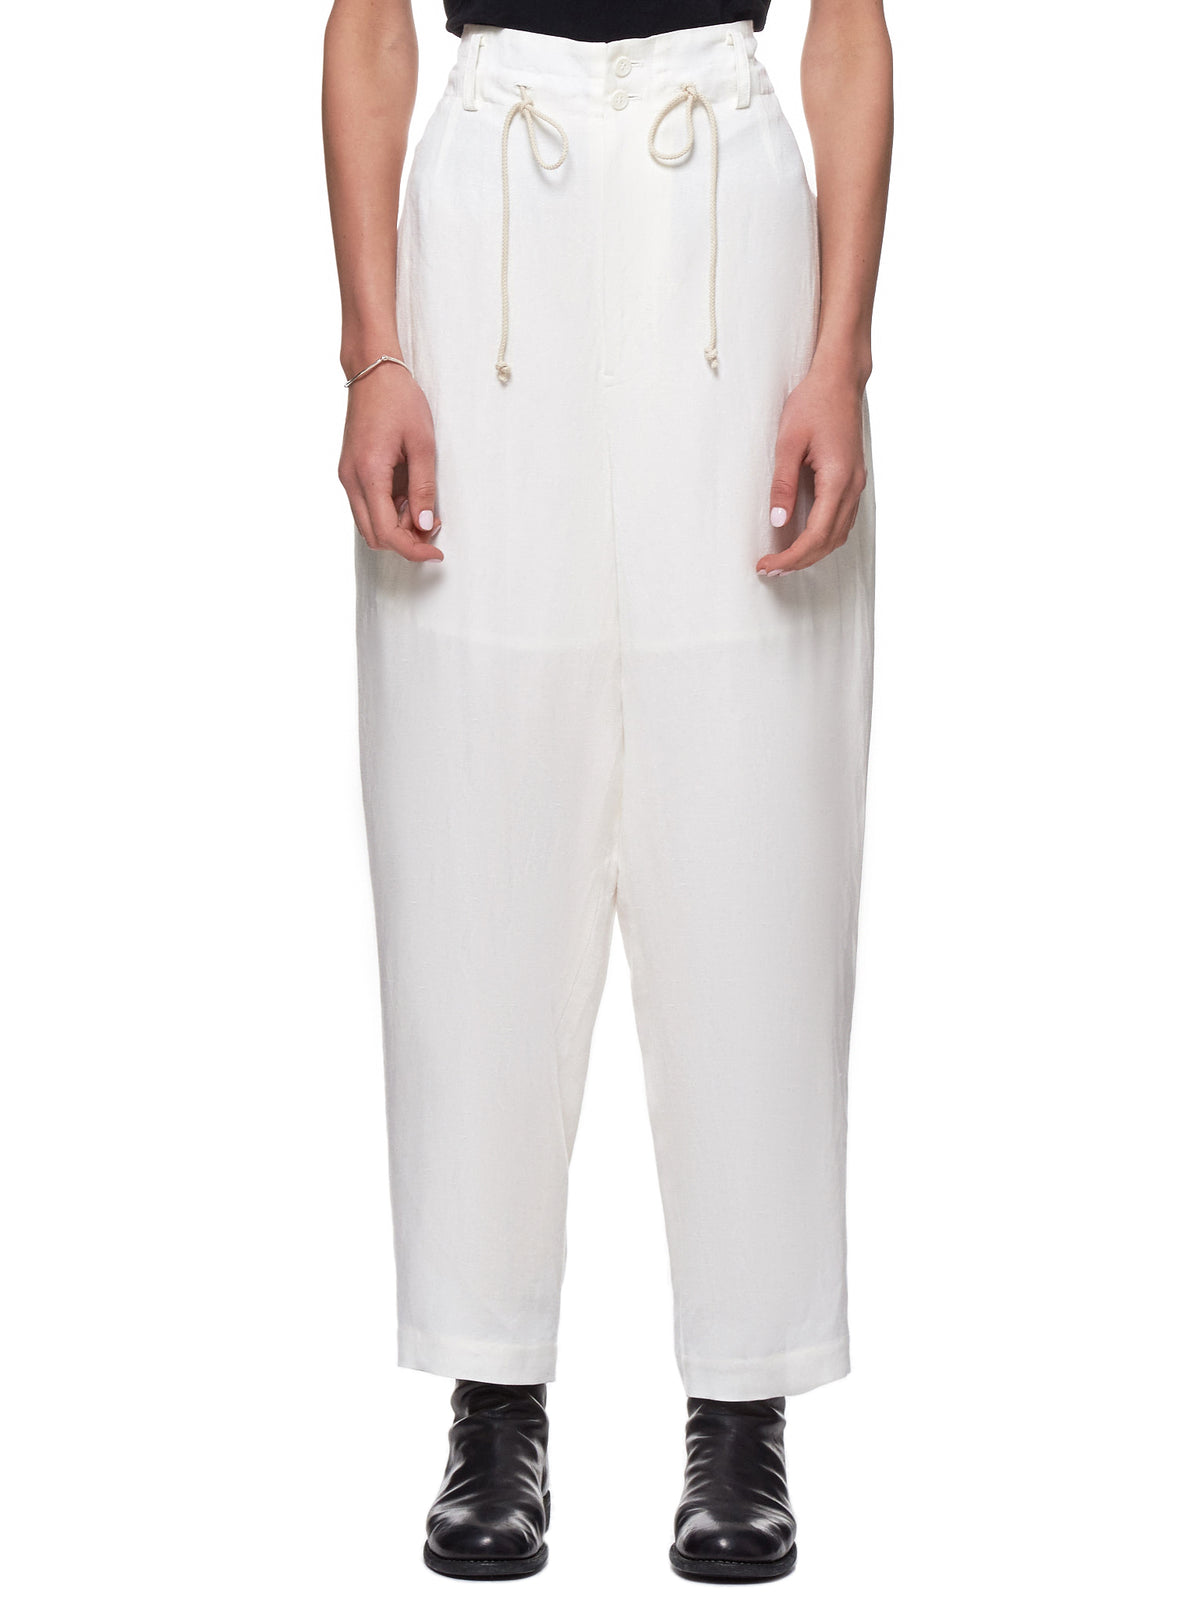 Rope Trousers (YH-P10-300-WHITE)